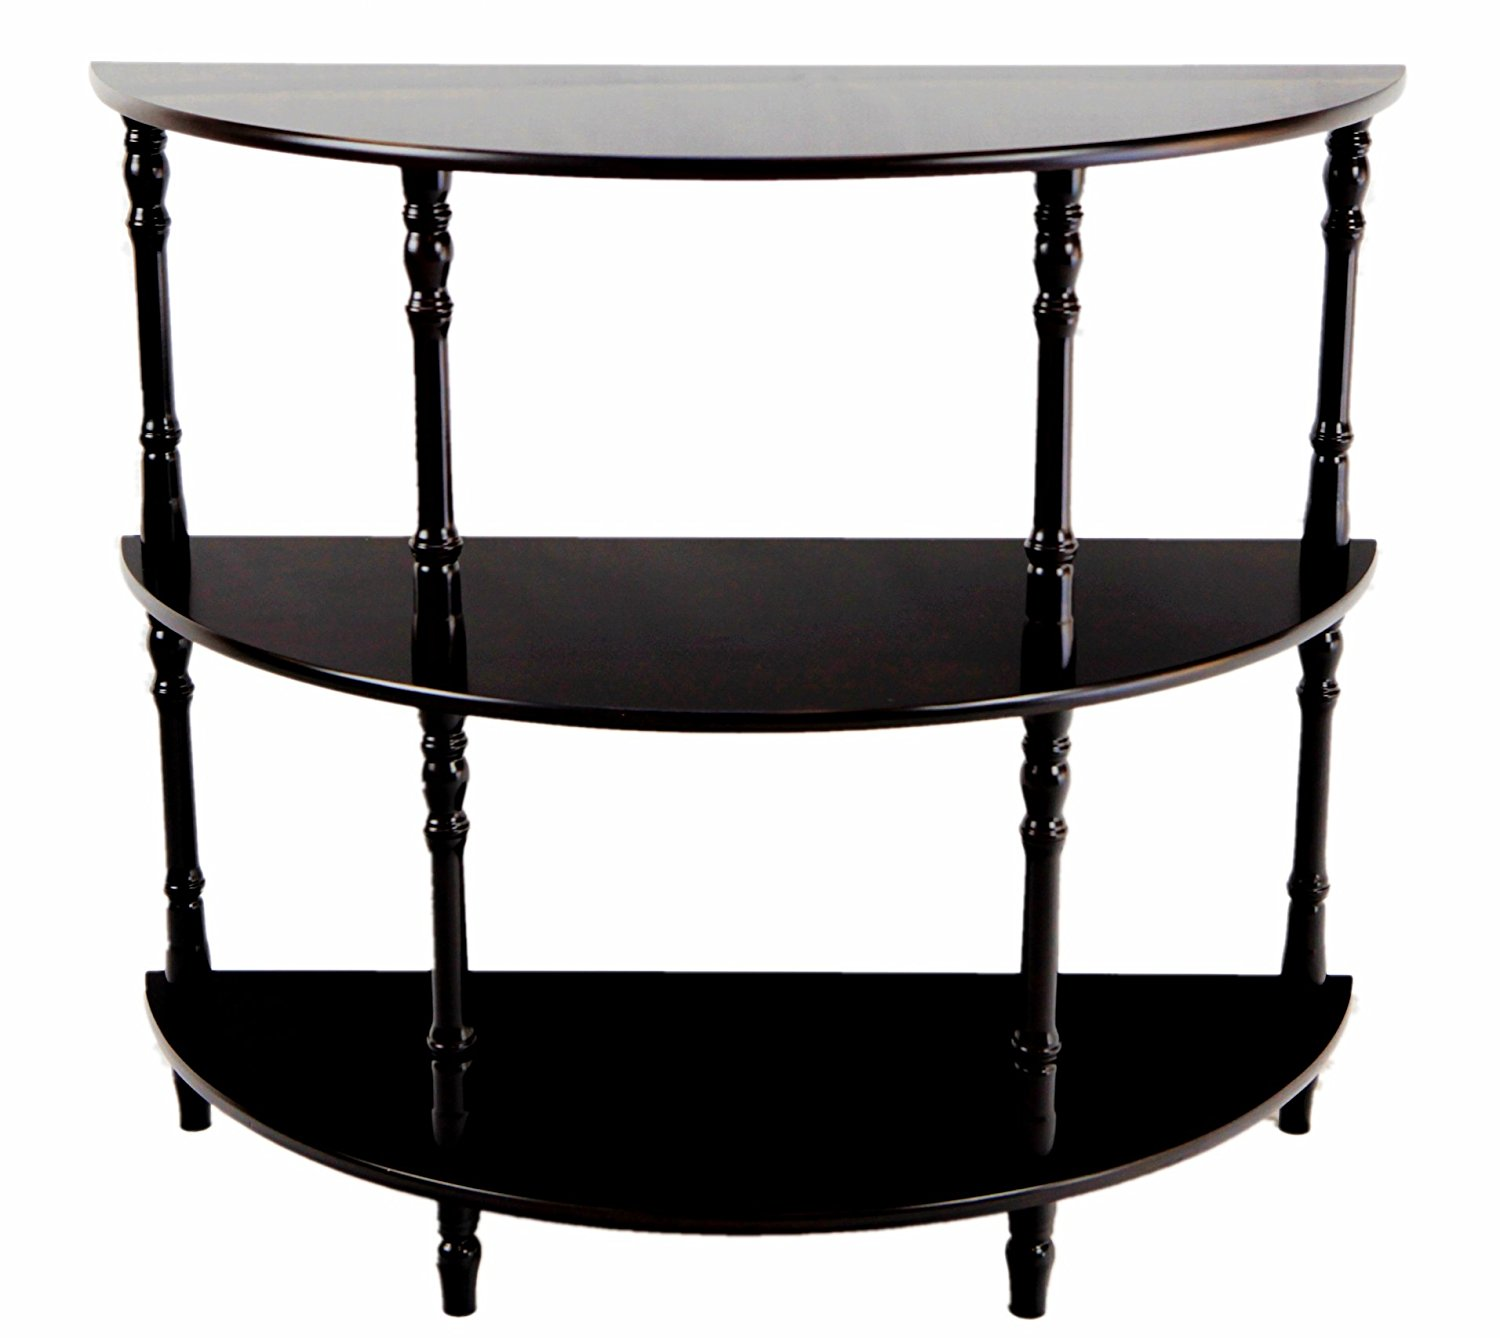 furniture mesmerizing half moon accent table with elegant looks stunning impressive double shelf black awesome console entryway and curved kitchen narrow demilune tables white